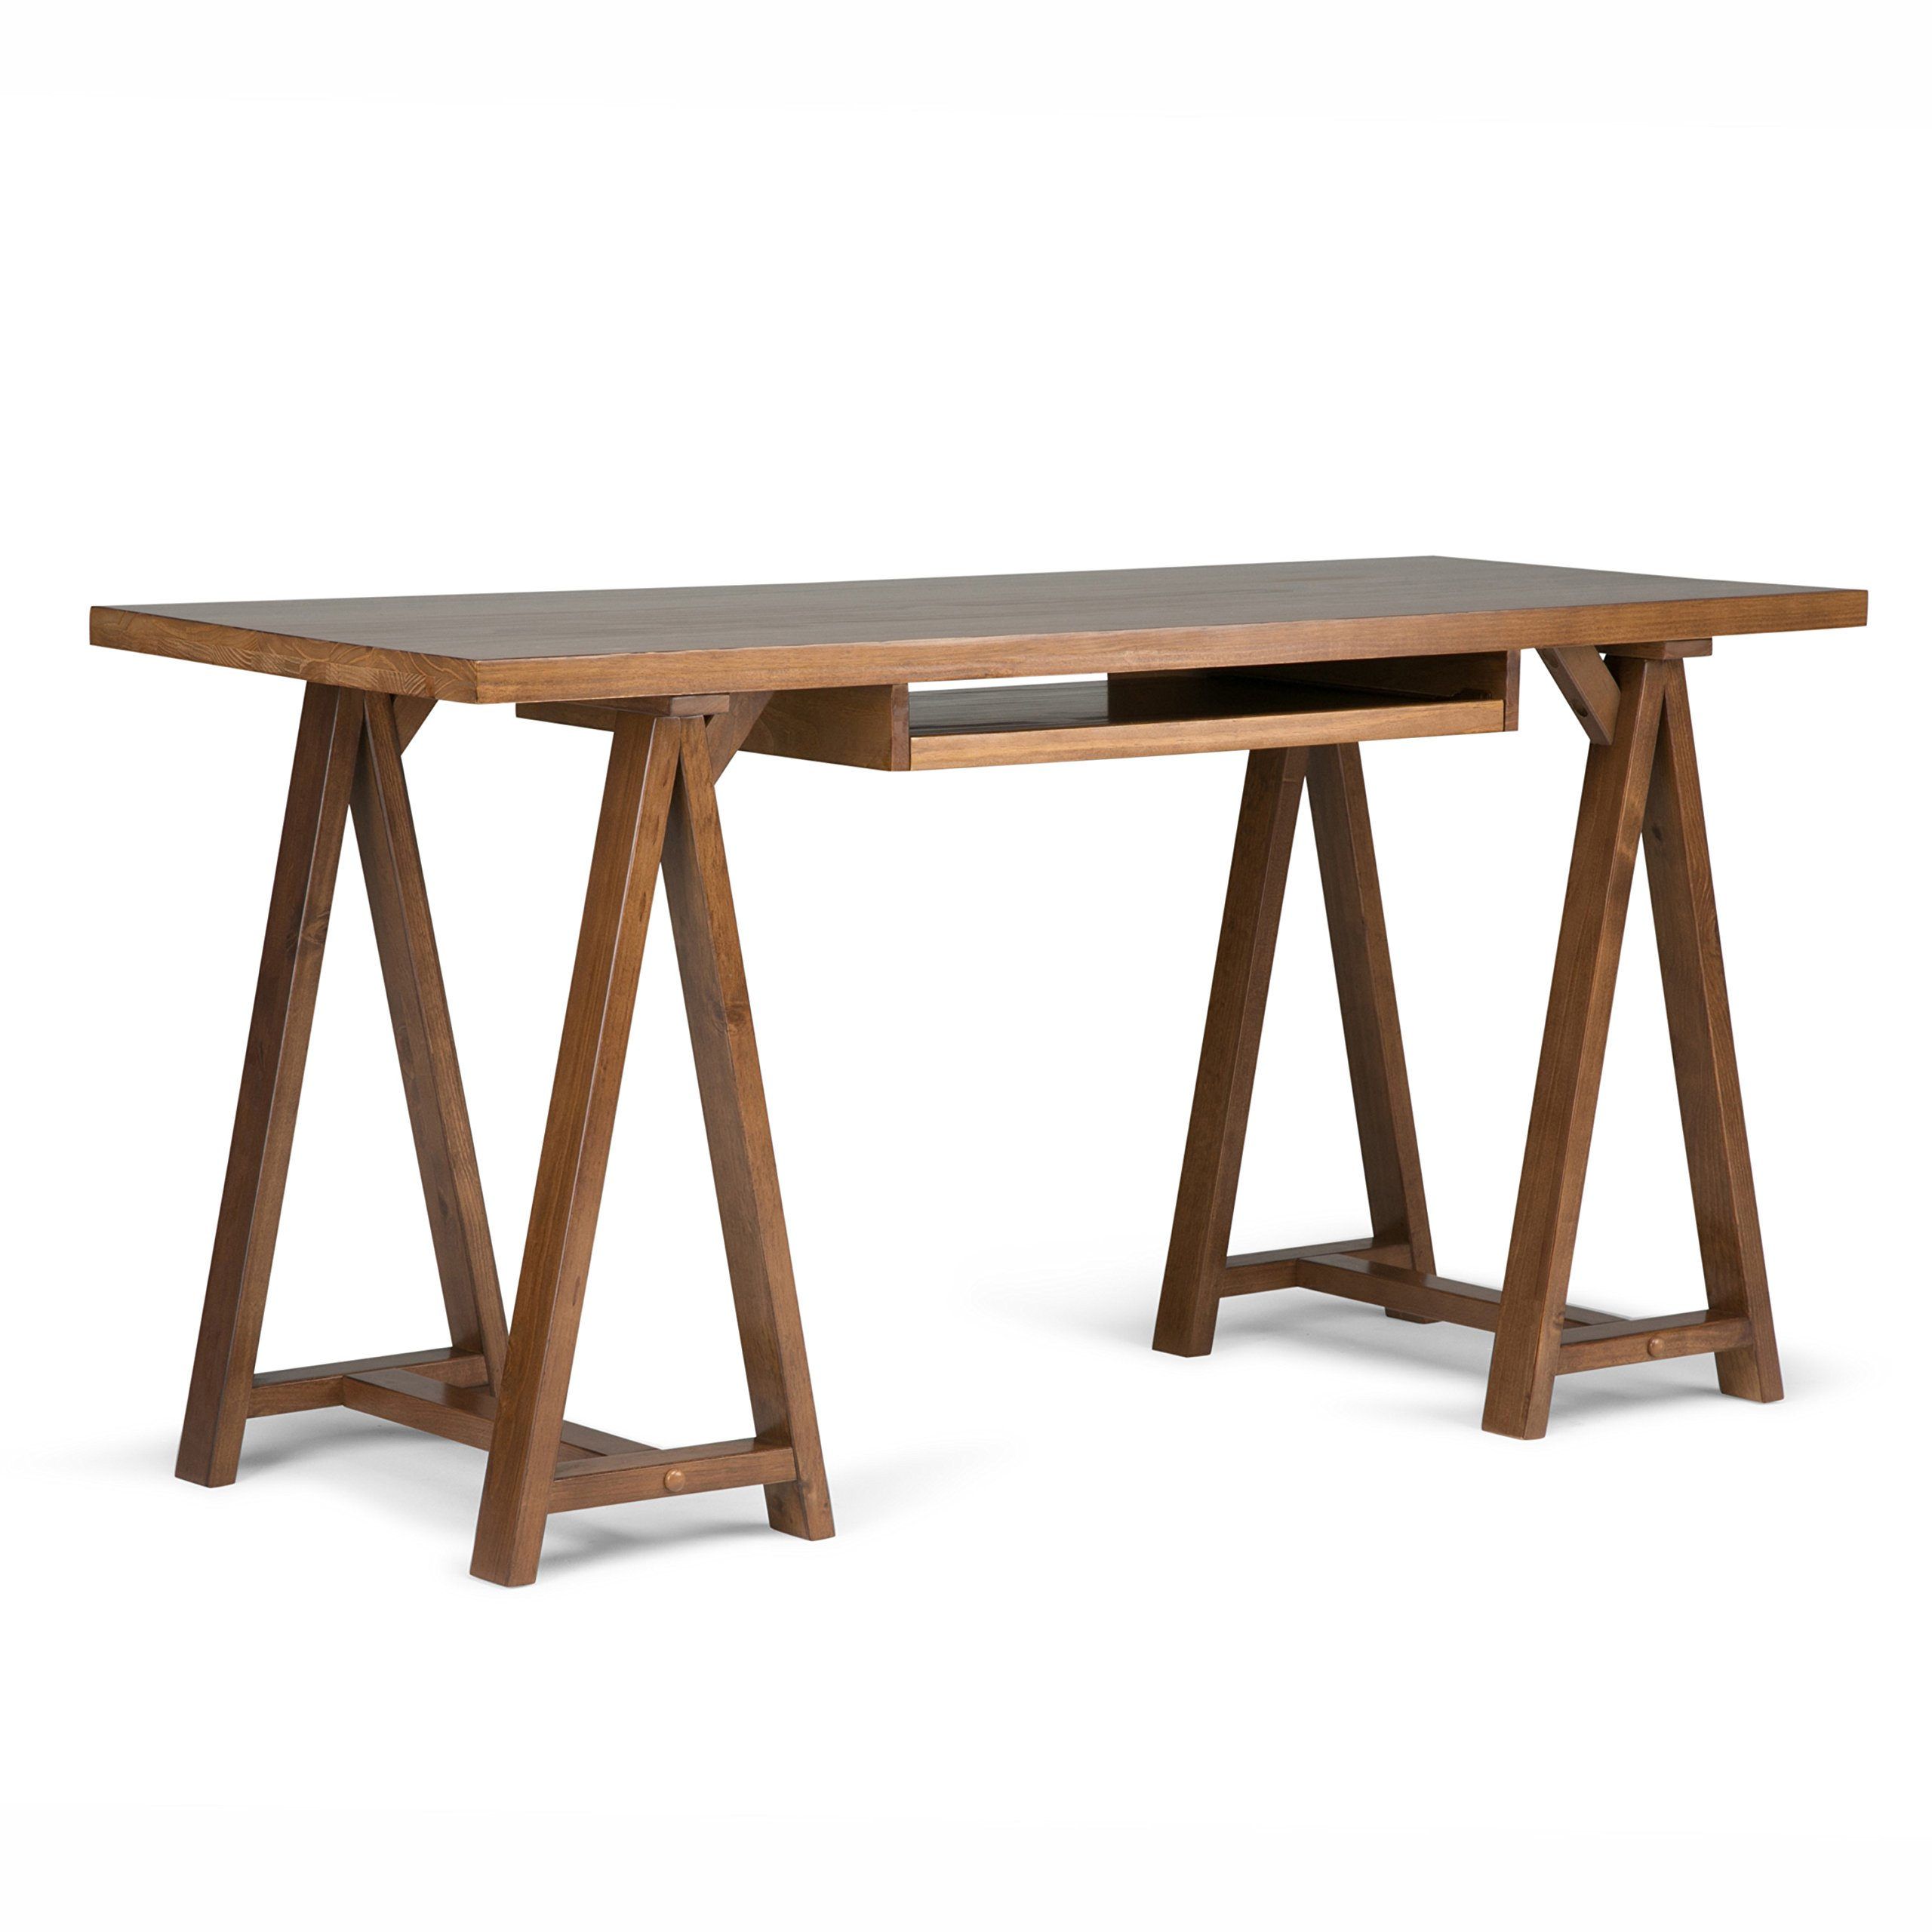 Simpli Home Sawhorse Solid Wood Office Desk, Medium Saddle Brown by Simpli Home (Image #1)